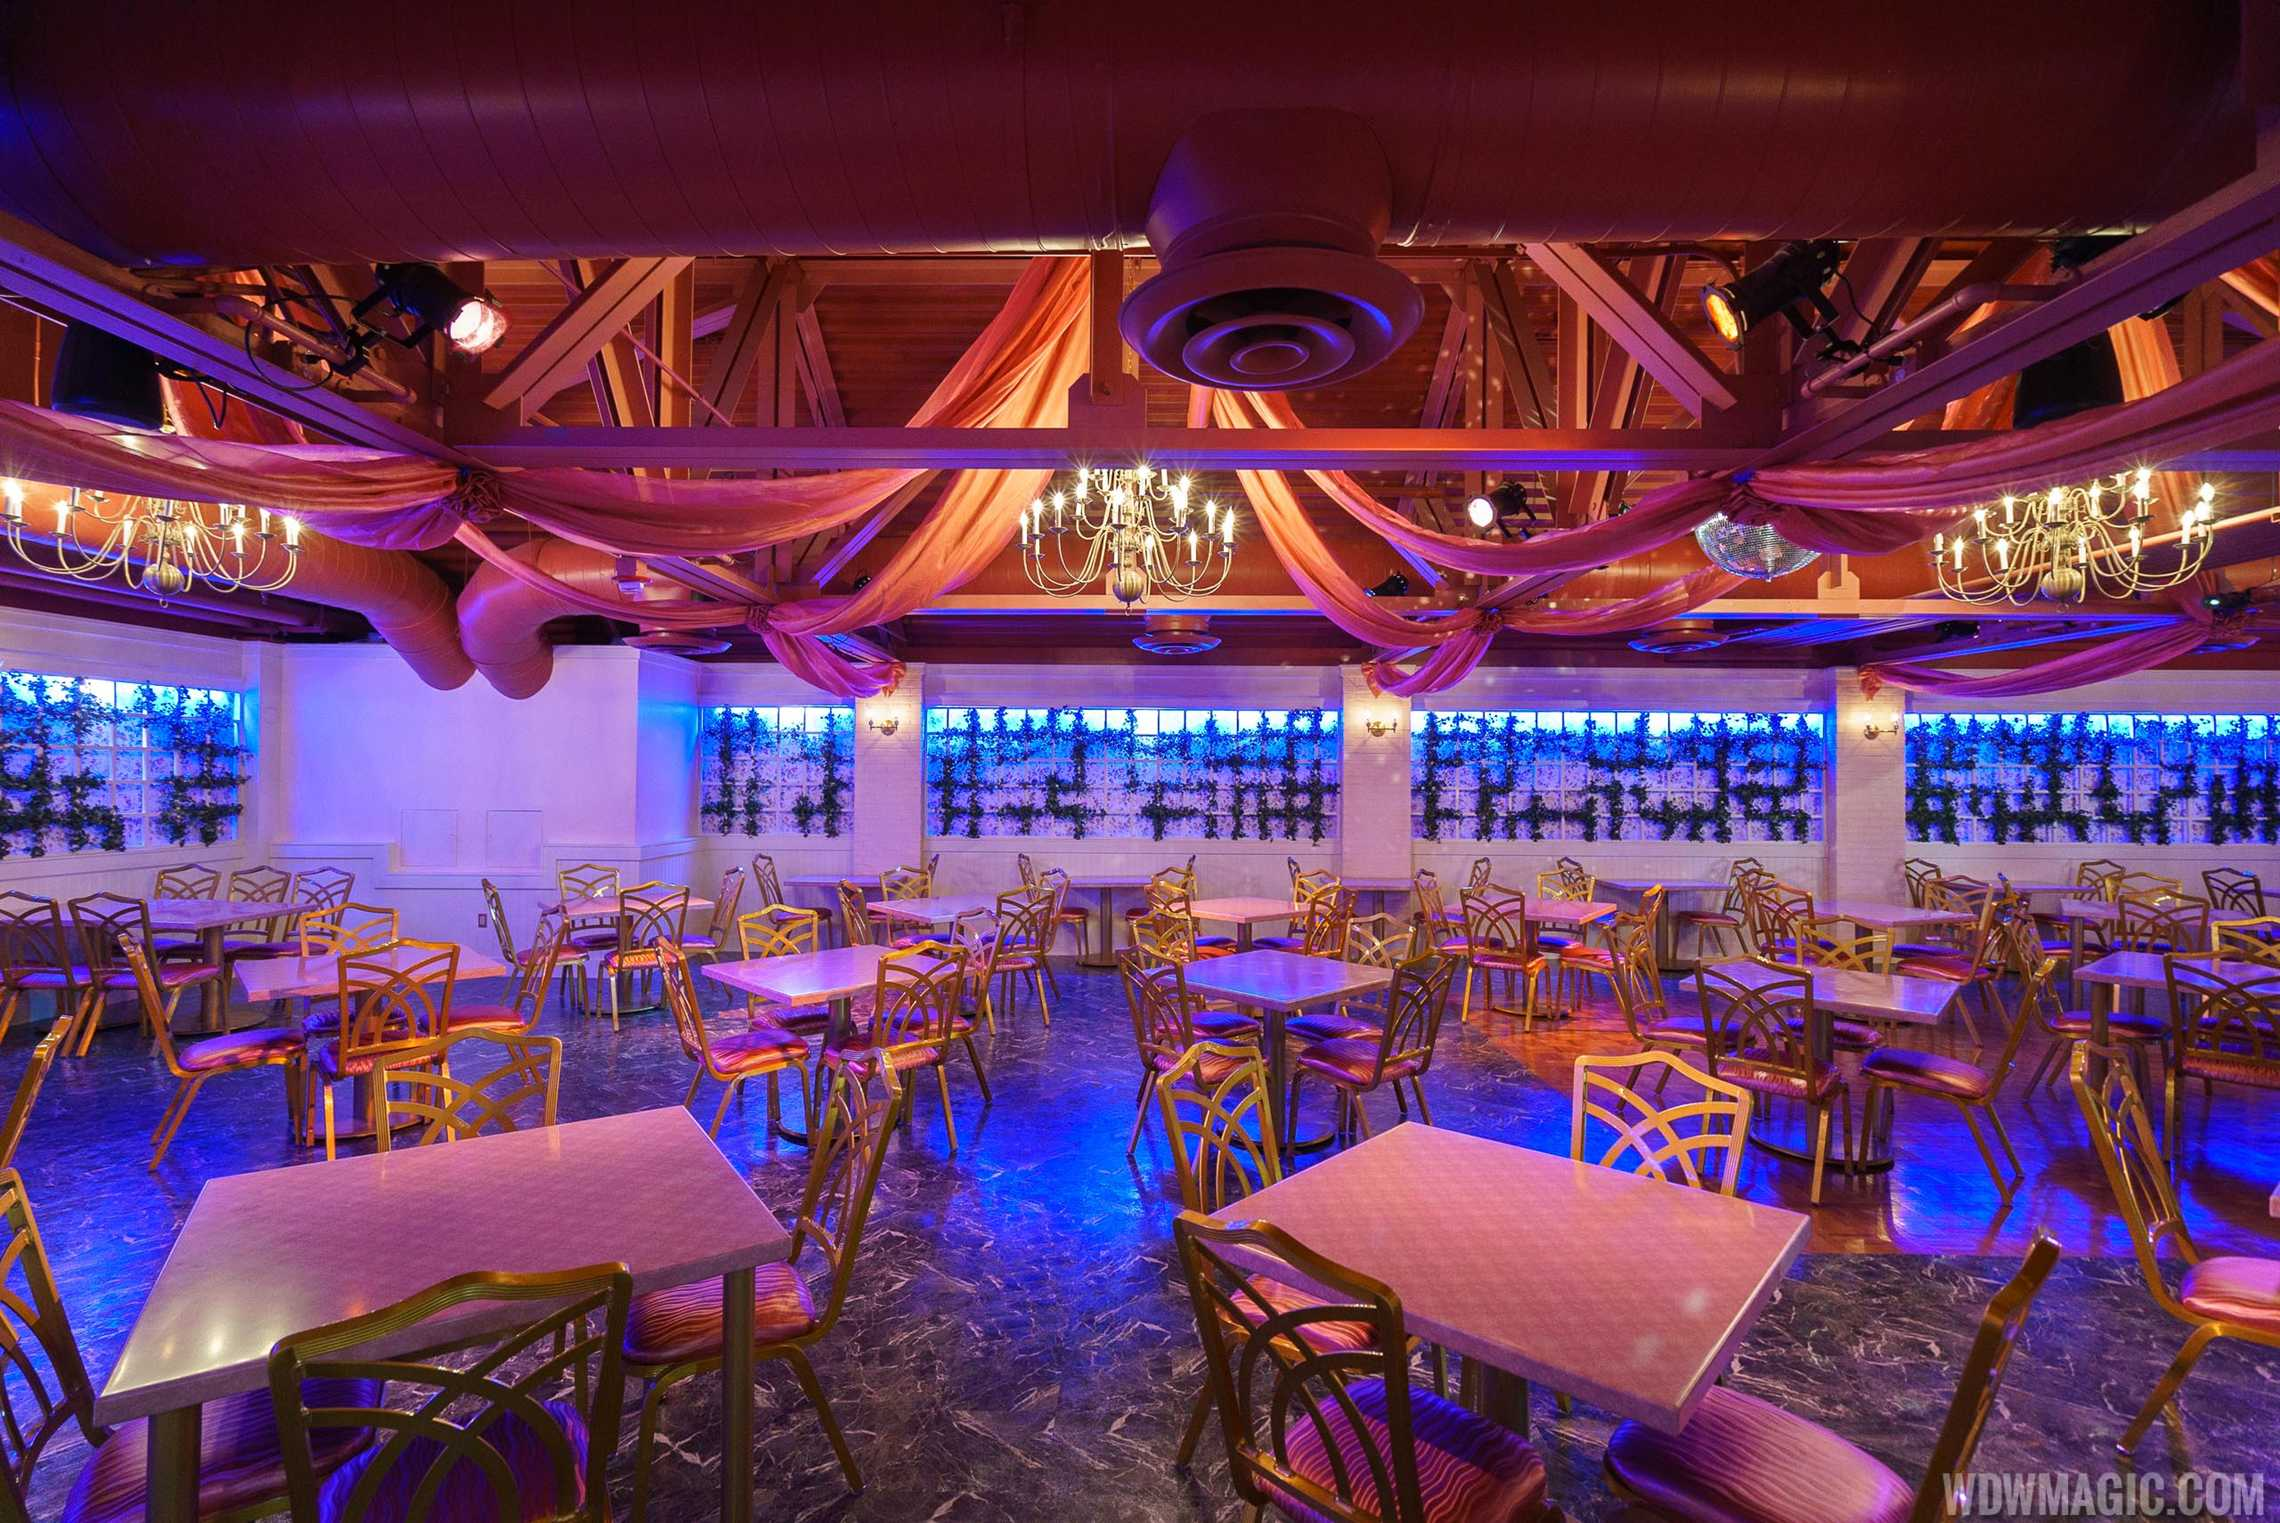 Inside PizzeRizzo - Inside the banquet hall